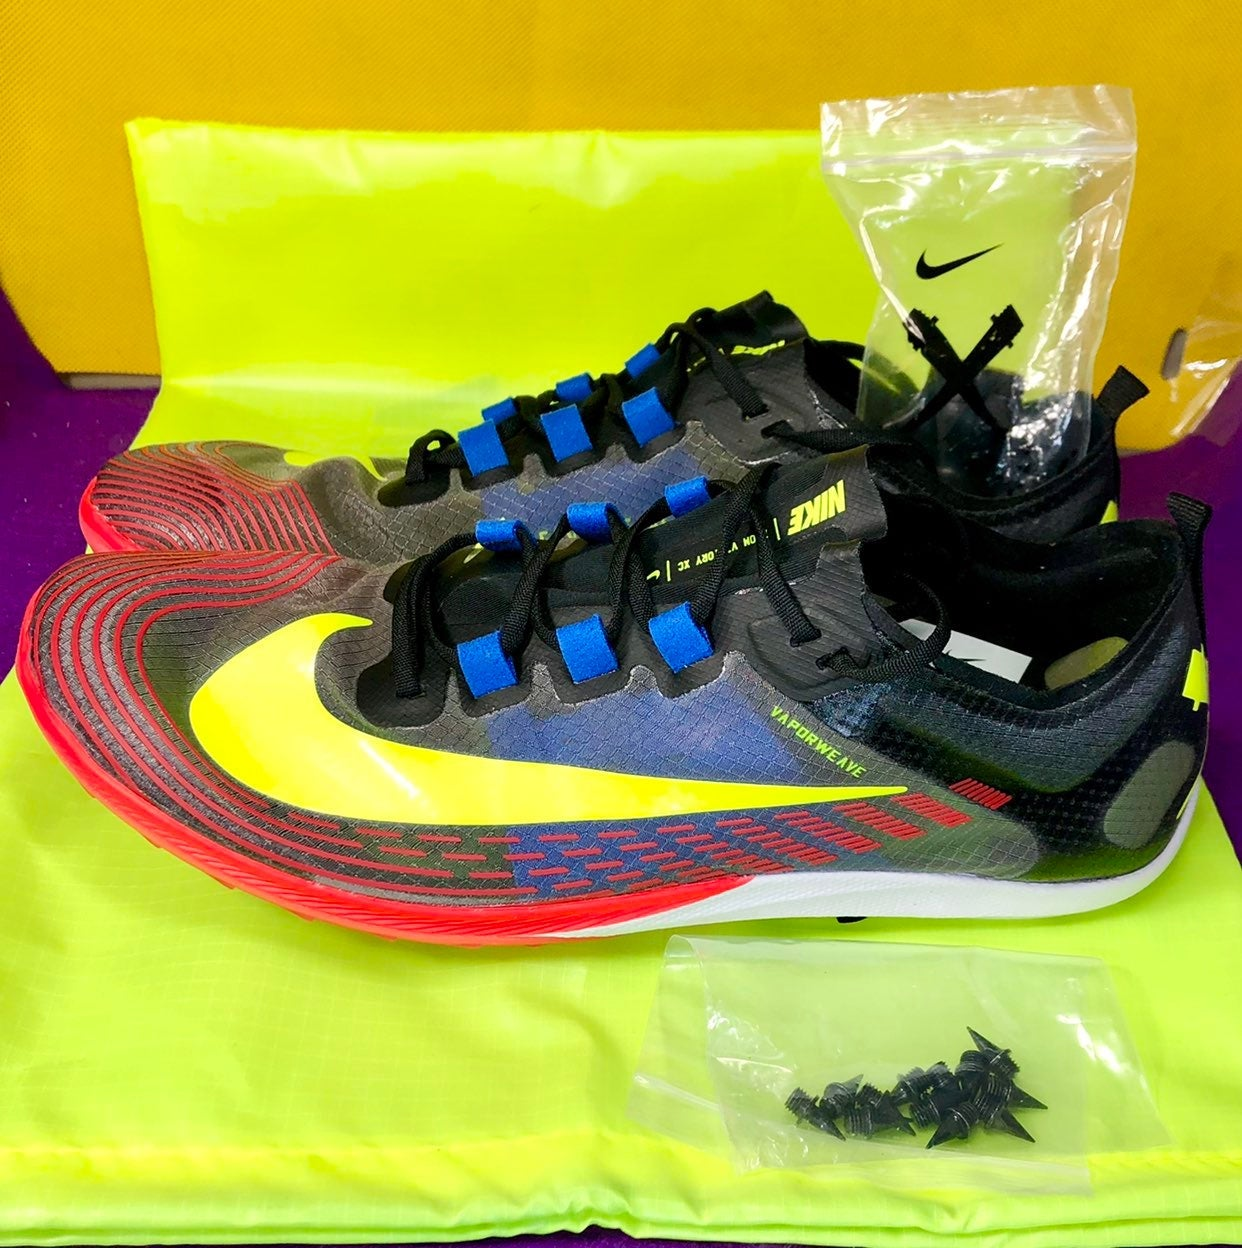 Nike Zoom Victory 5 XC Spikes Size 8.5